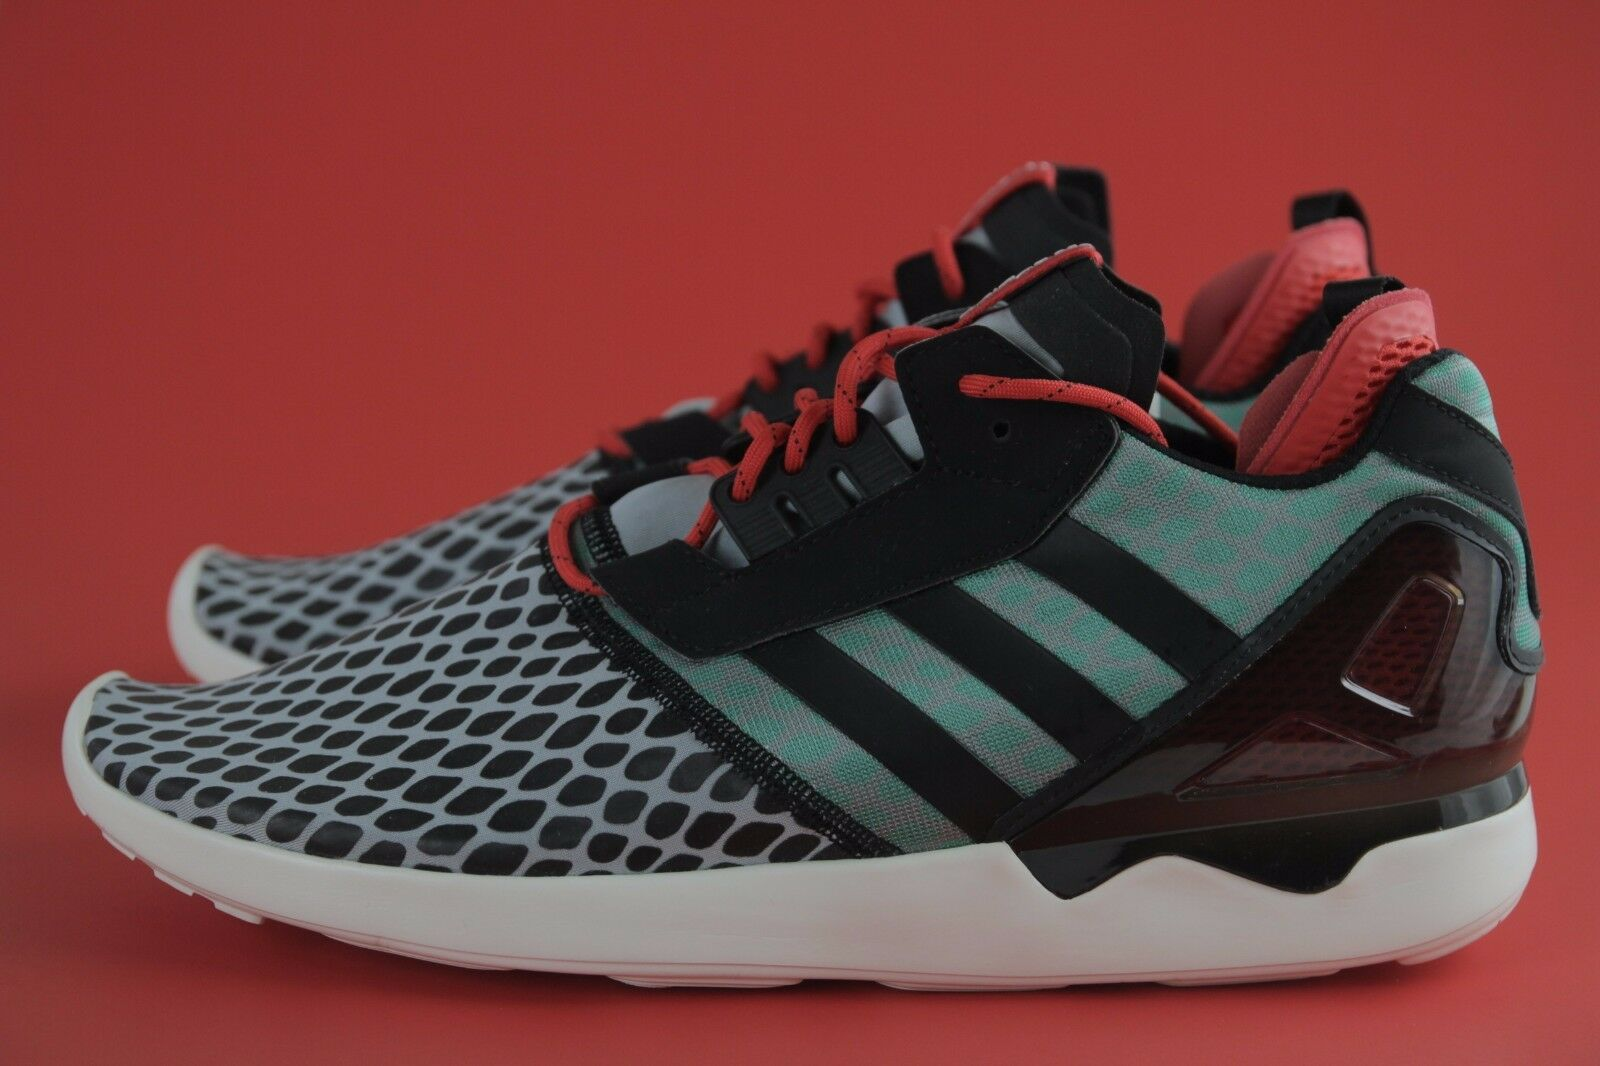 SALE  LAST PAIR ADIDAS B24953 Nuovi ORIGINALI ZX 8000 BOOST BLK  RD  GRN Sz 13 ANB  outlet in vendita